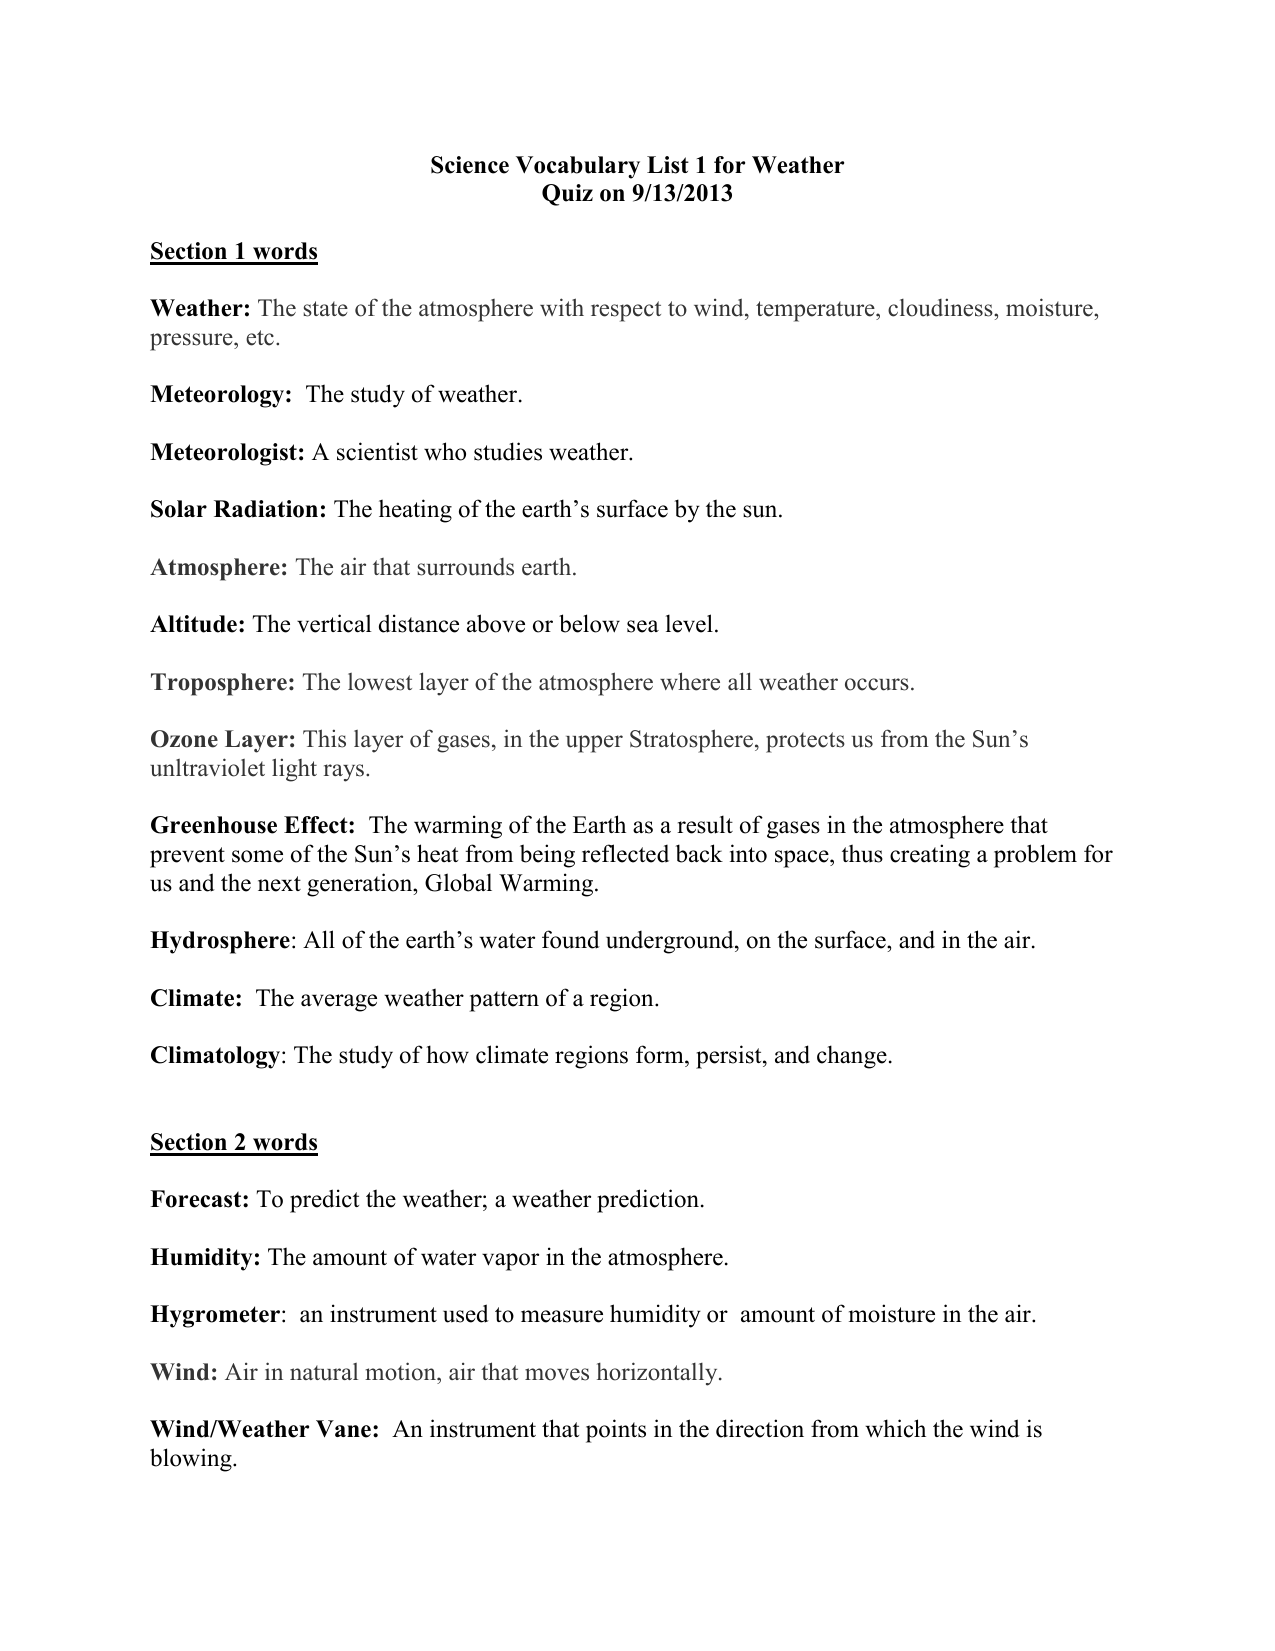 Science Vocabulary List 1 For Weather Quiz On 9 13 2013 Section